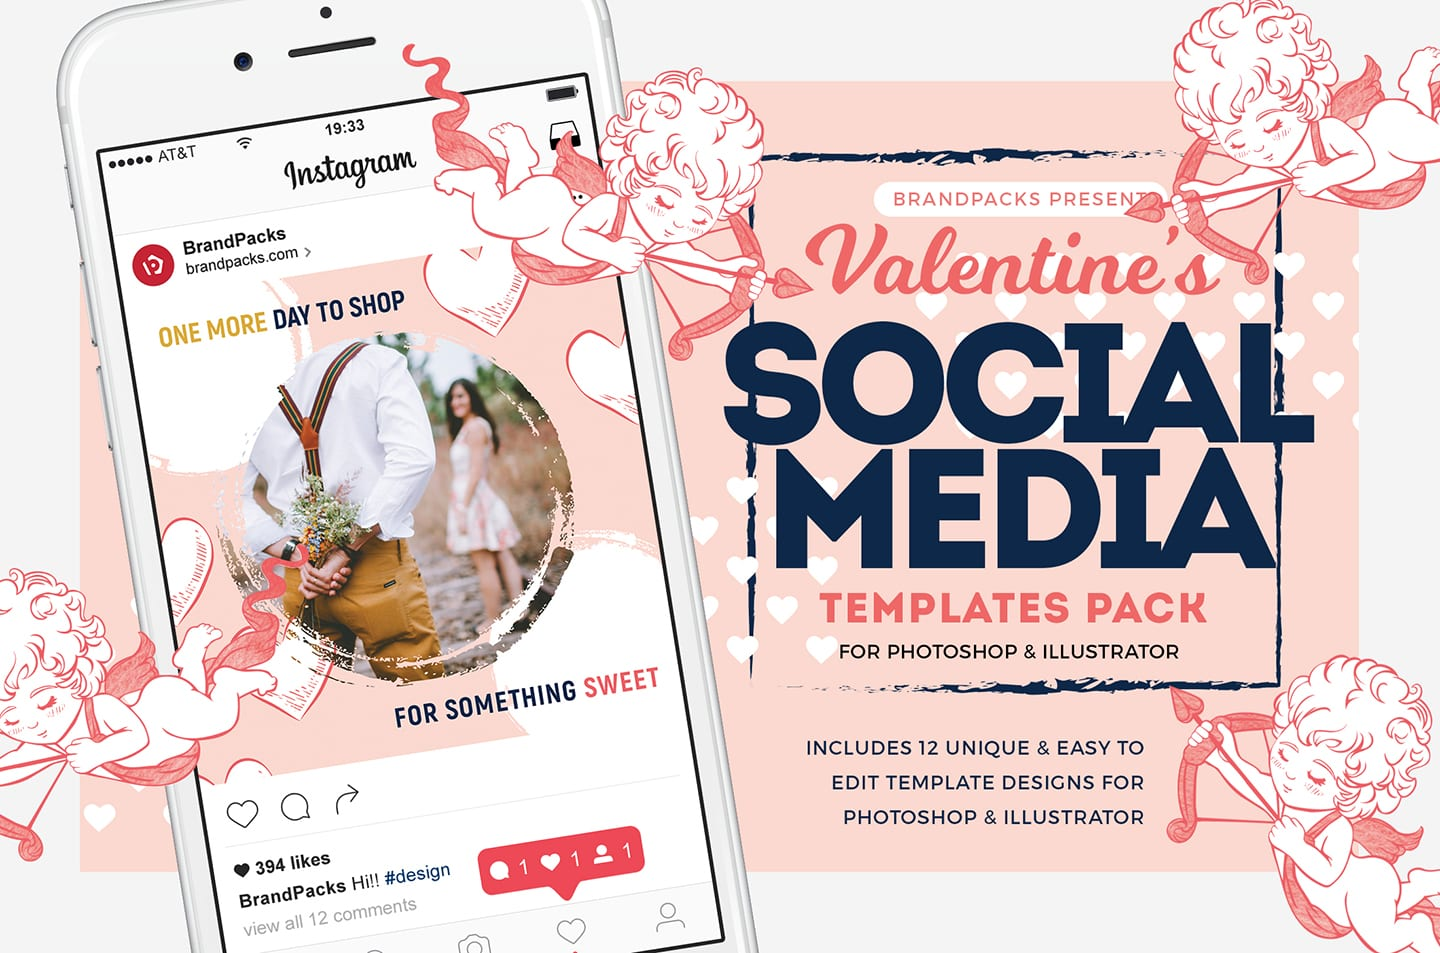 Valentines Instagram Templates Pack